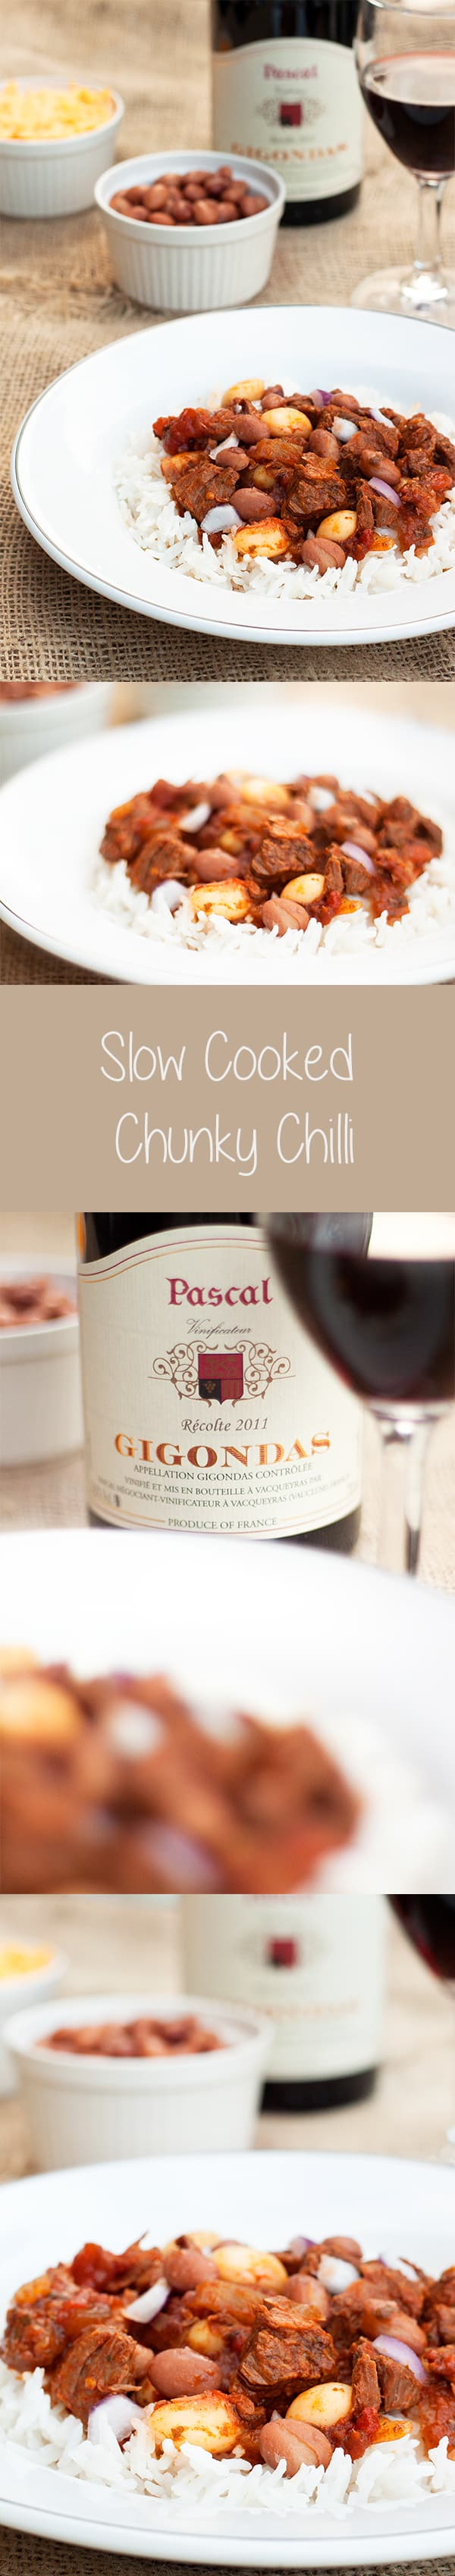 hearty-slow-cooked-chunky-chilli-recipe-1